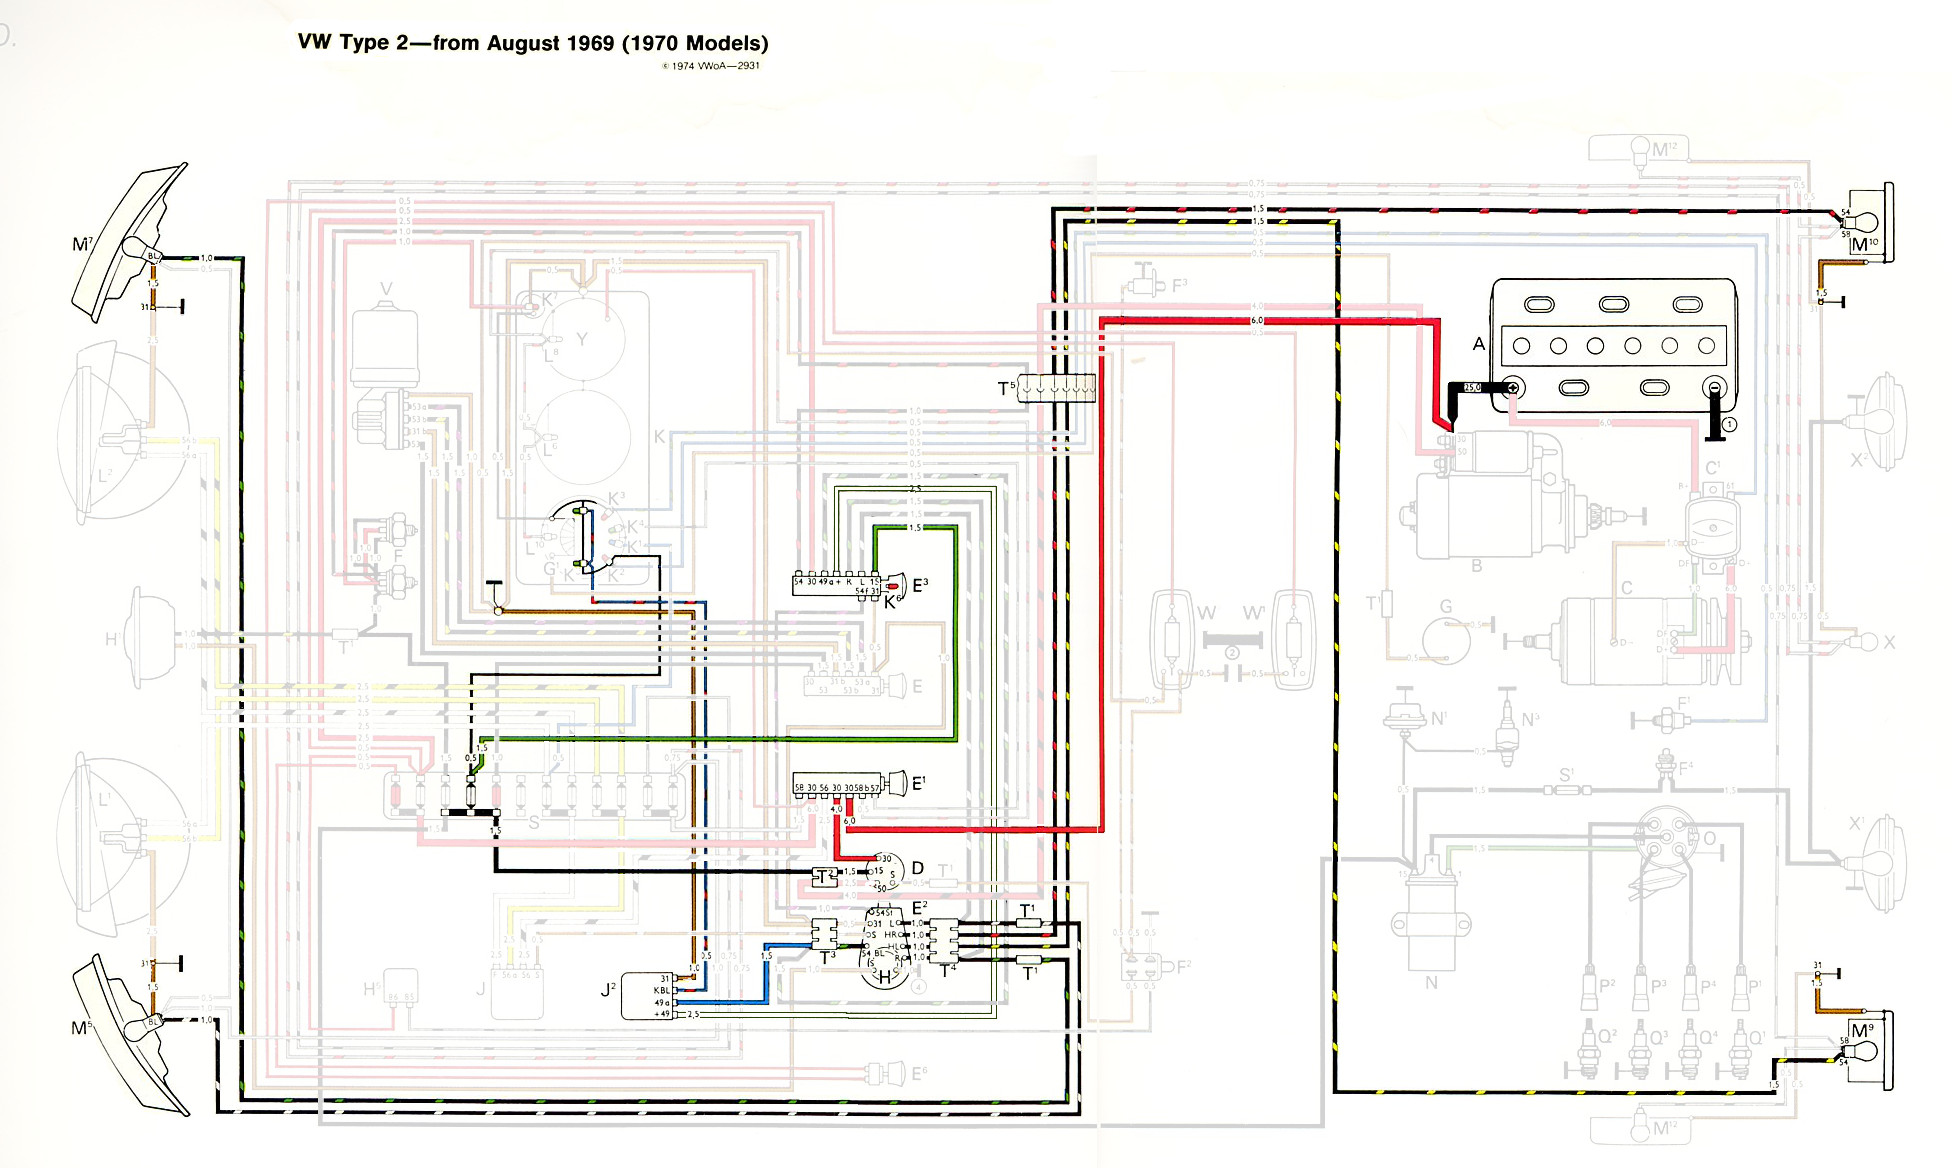 1970bus_signals thesamba com type 2 wiring diagrams Basic Turn Signal Wiring Diagram at edmiracle.co